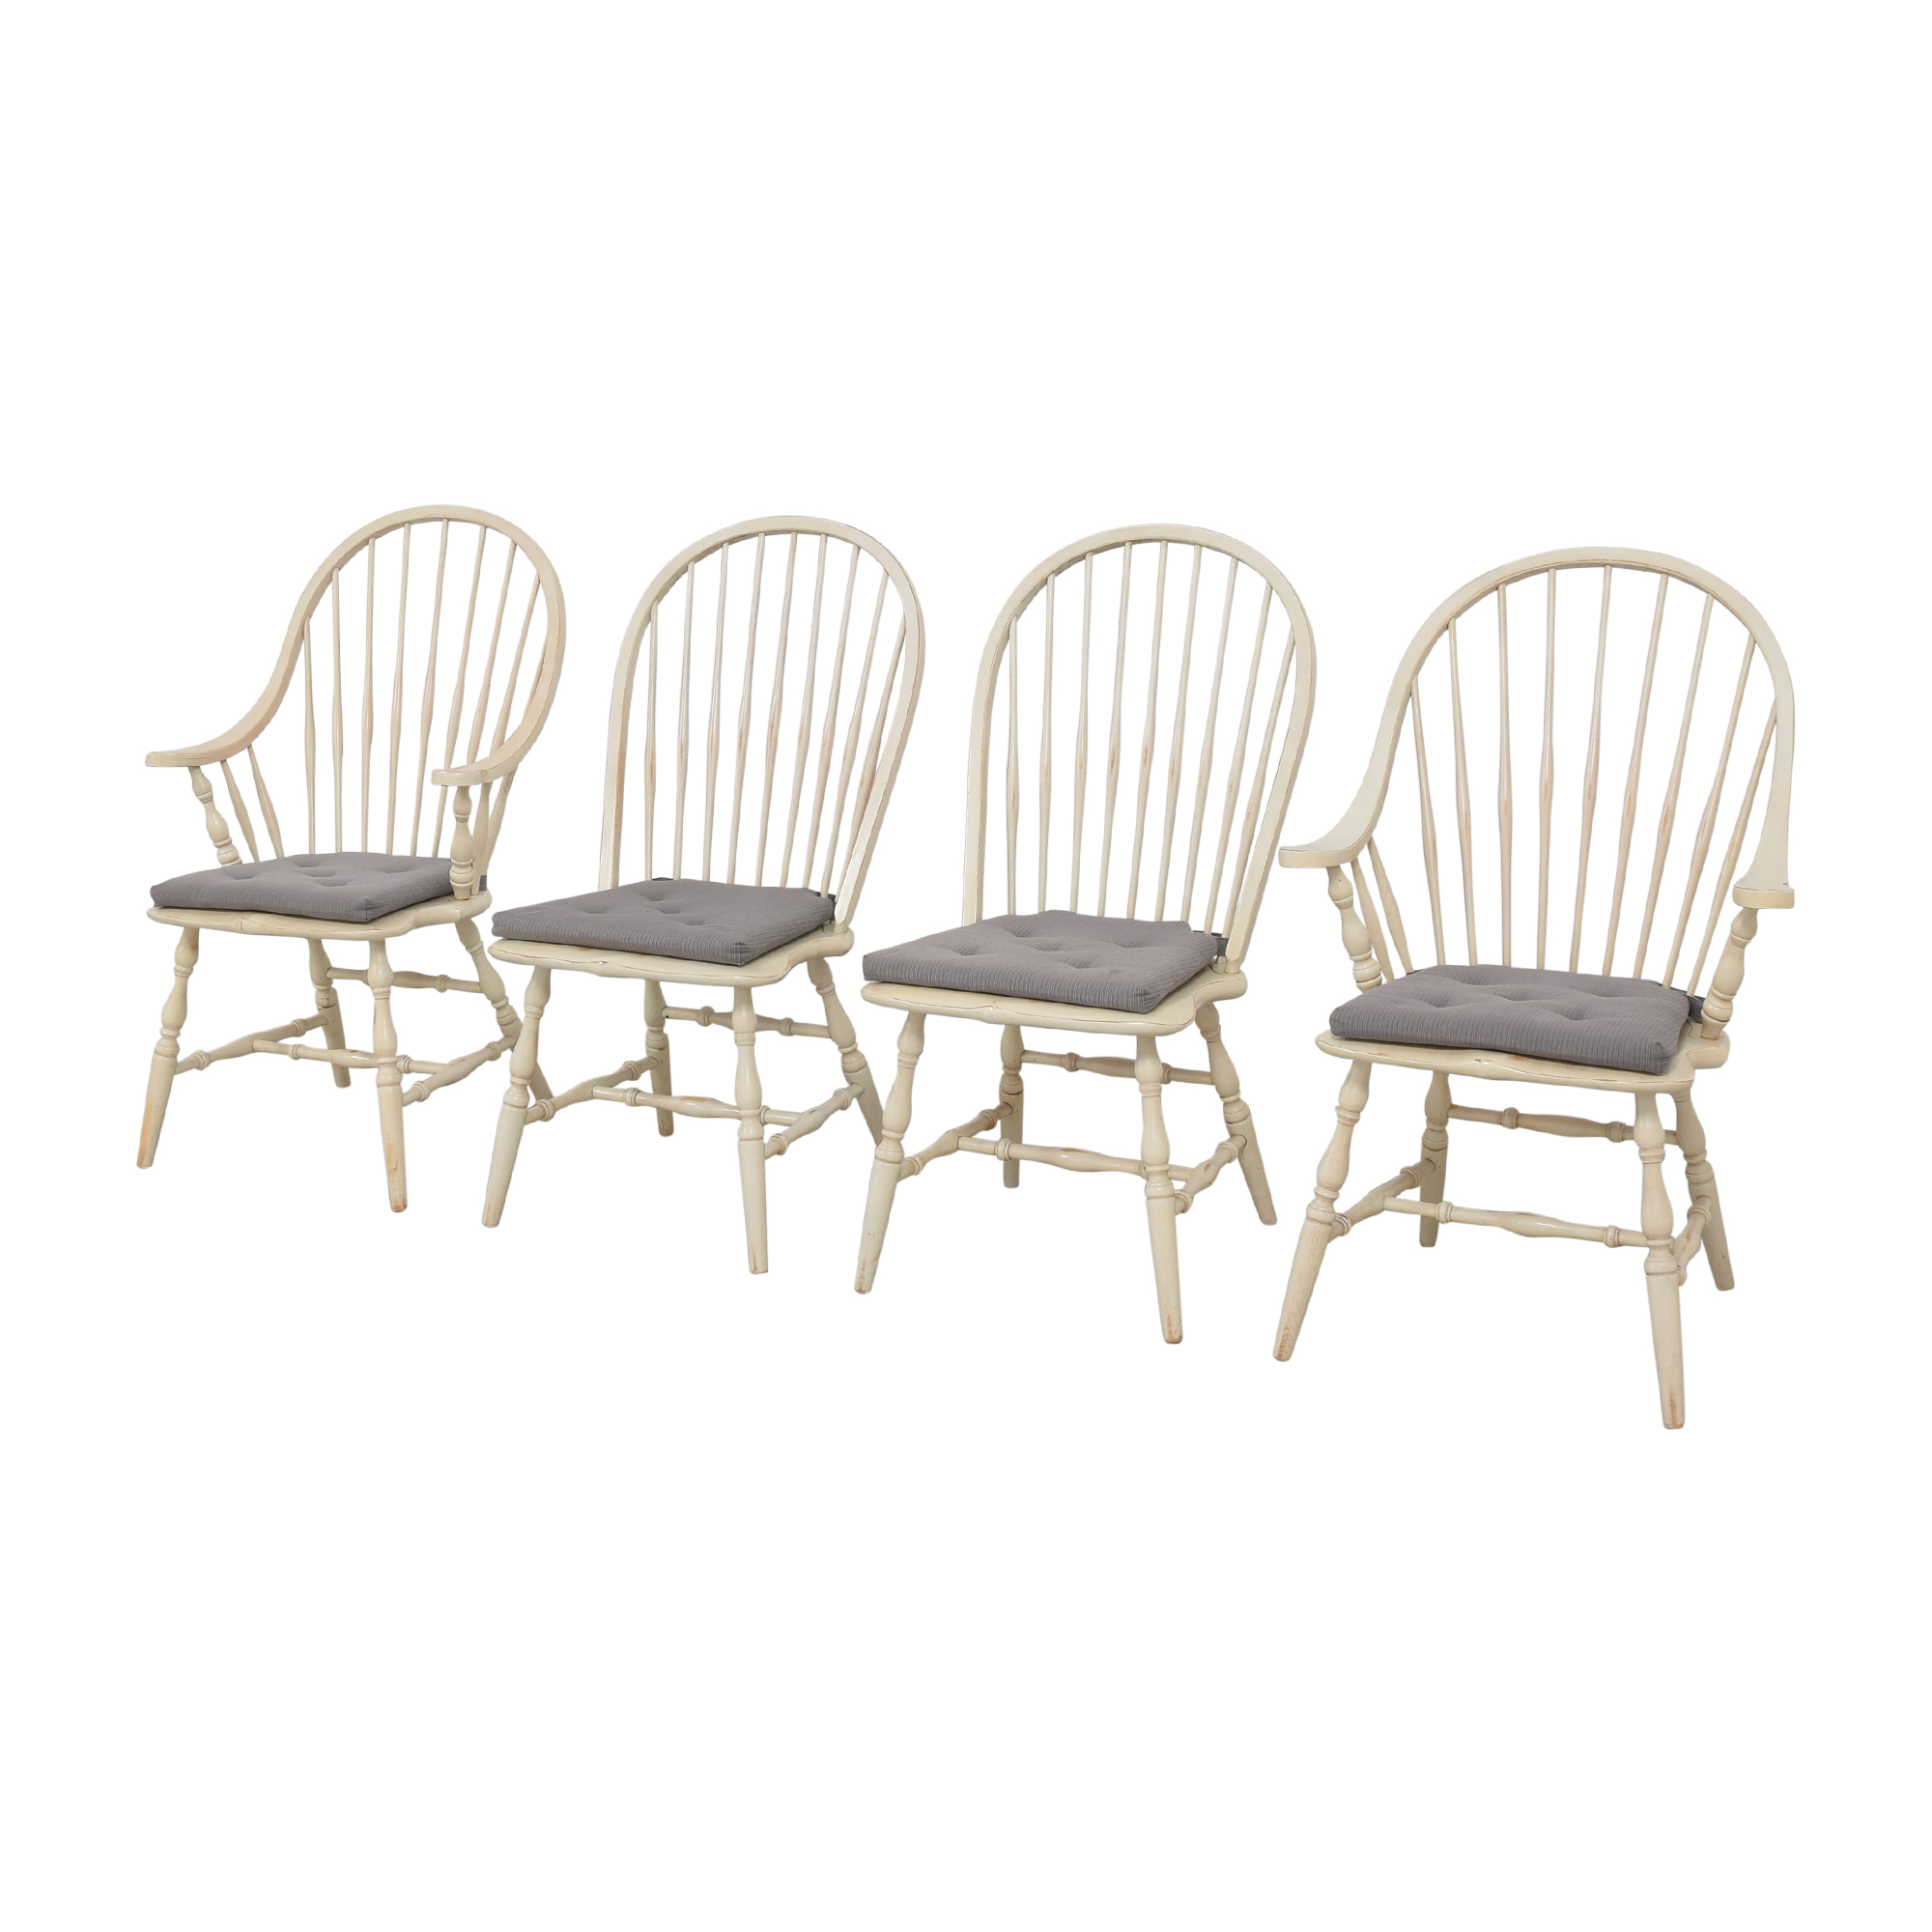 Windsor Dining Chairs white, grey